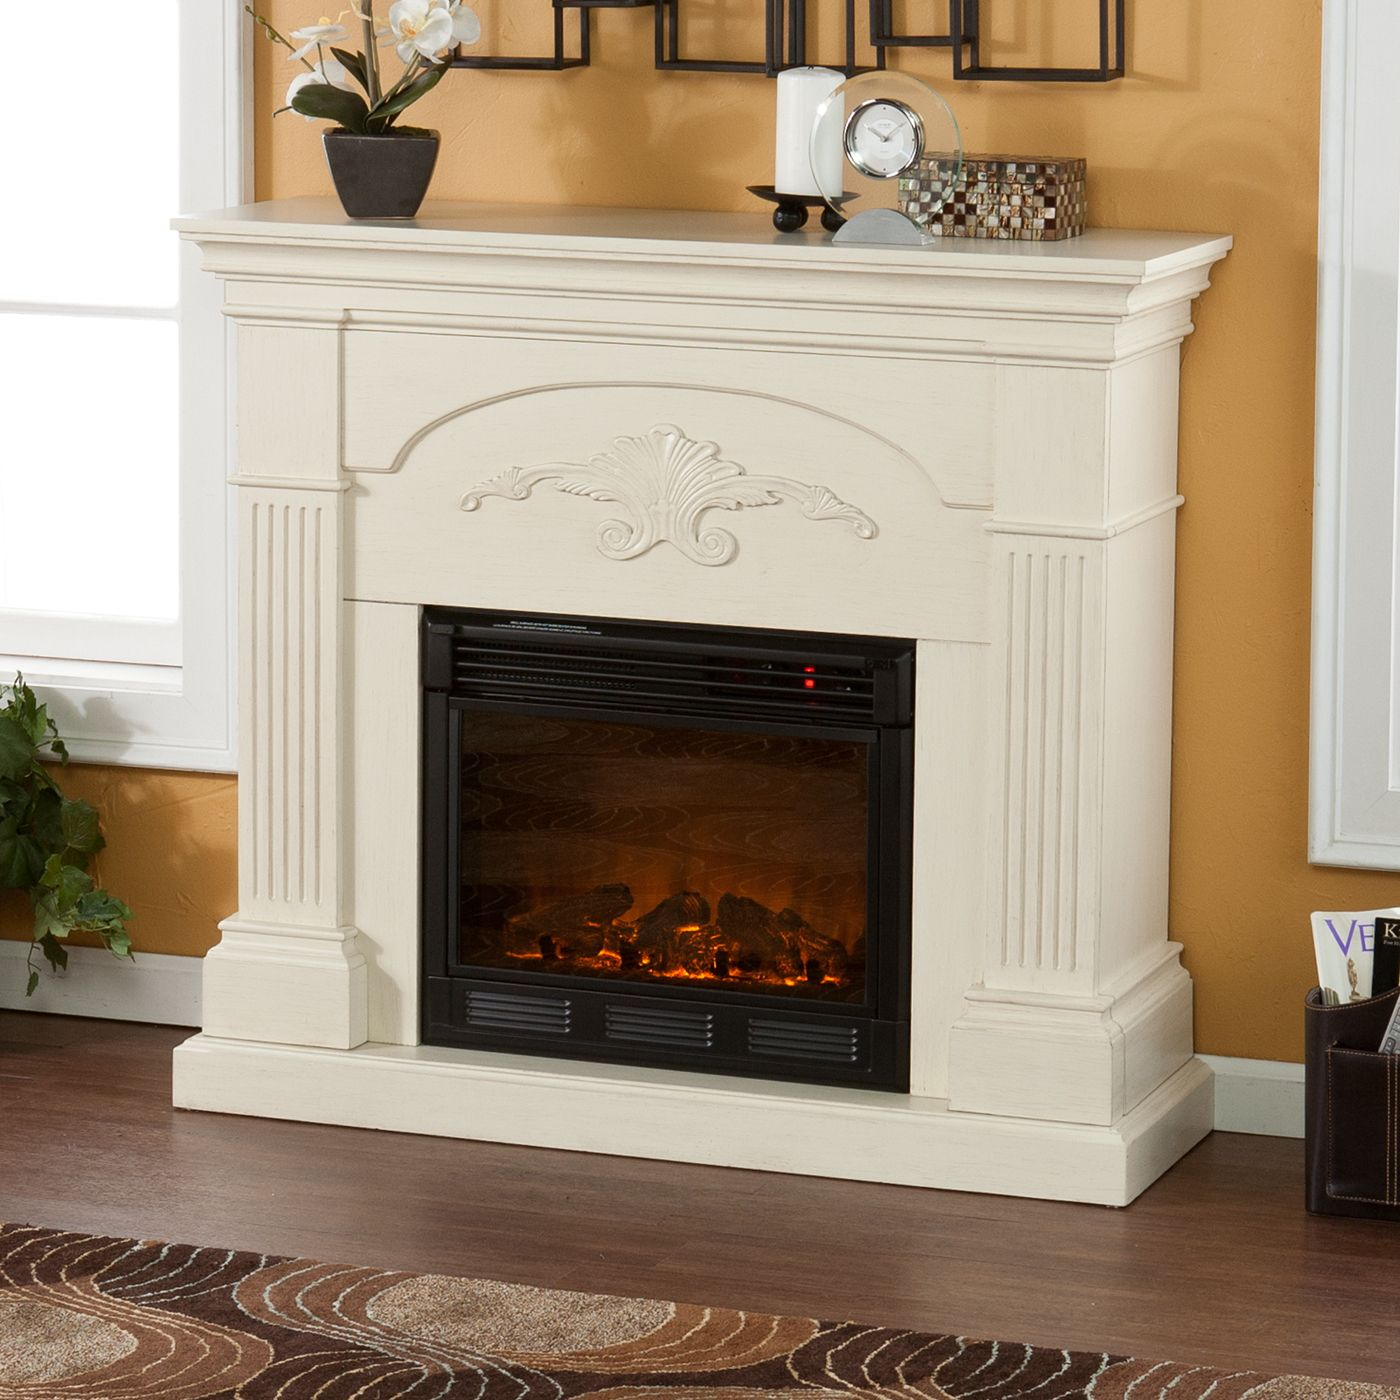 The Weather Outside Is Frightful And Fire So Delightful Wouldn T You Love To Be In Front Of A Fireplace Right Now